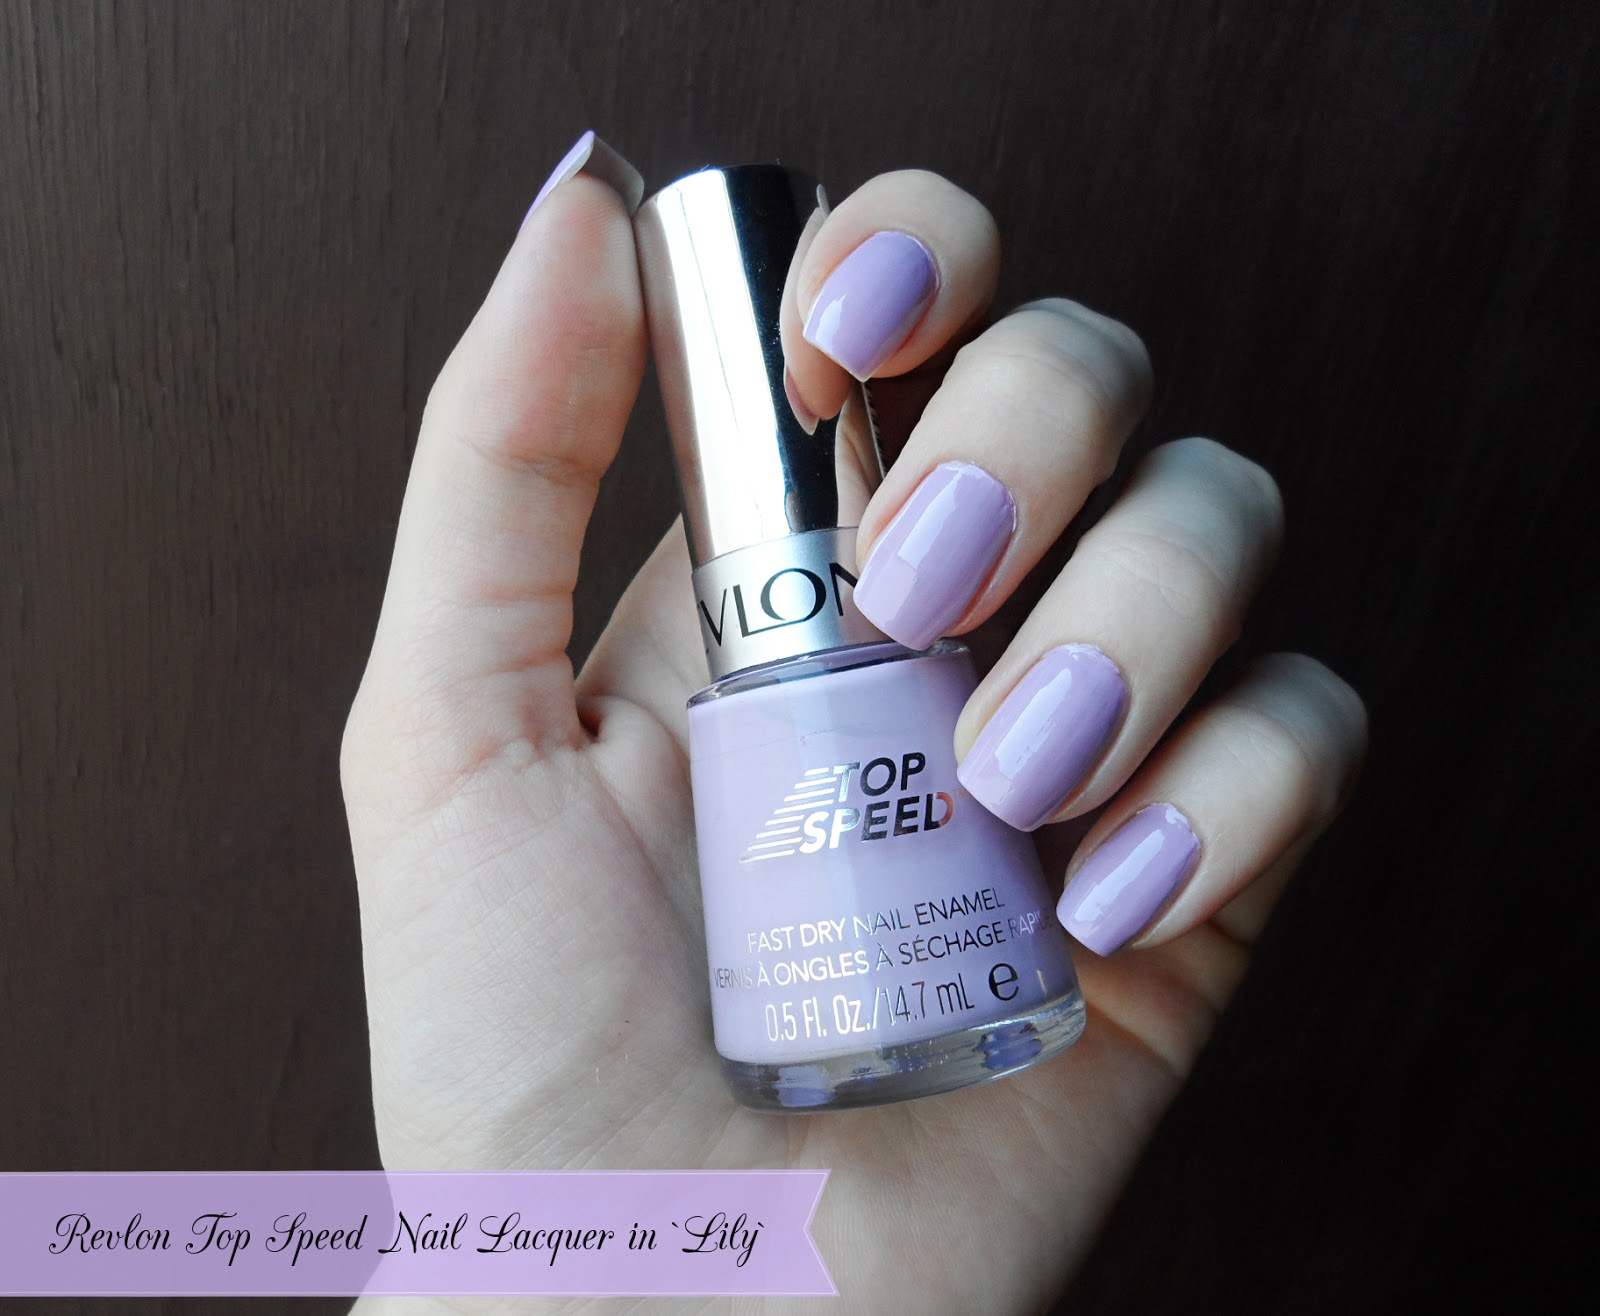 revlon nail polish review swatches, revlon cosmetics review